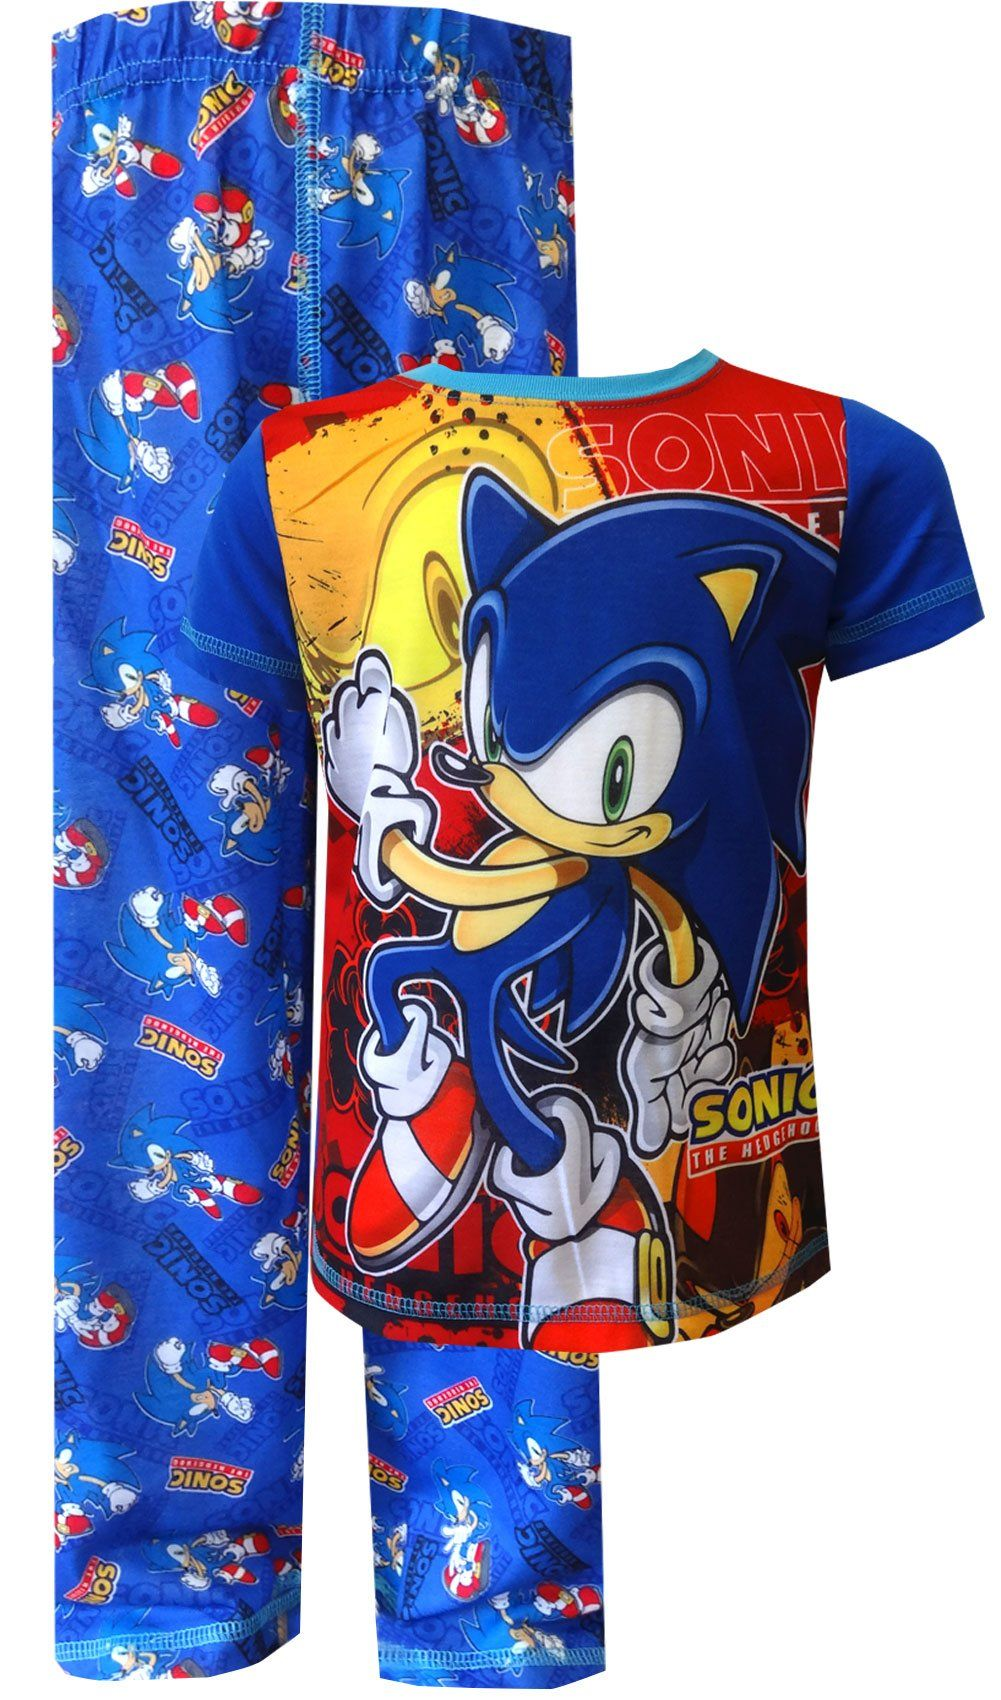 Amazon Com Sonic The Hedgehog On The Run Pajamas For Little Boys Clothing Sonic The Hedgehog Pajamas Baby Boy Outfits Little Boys